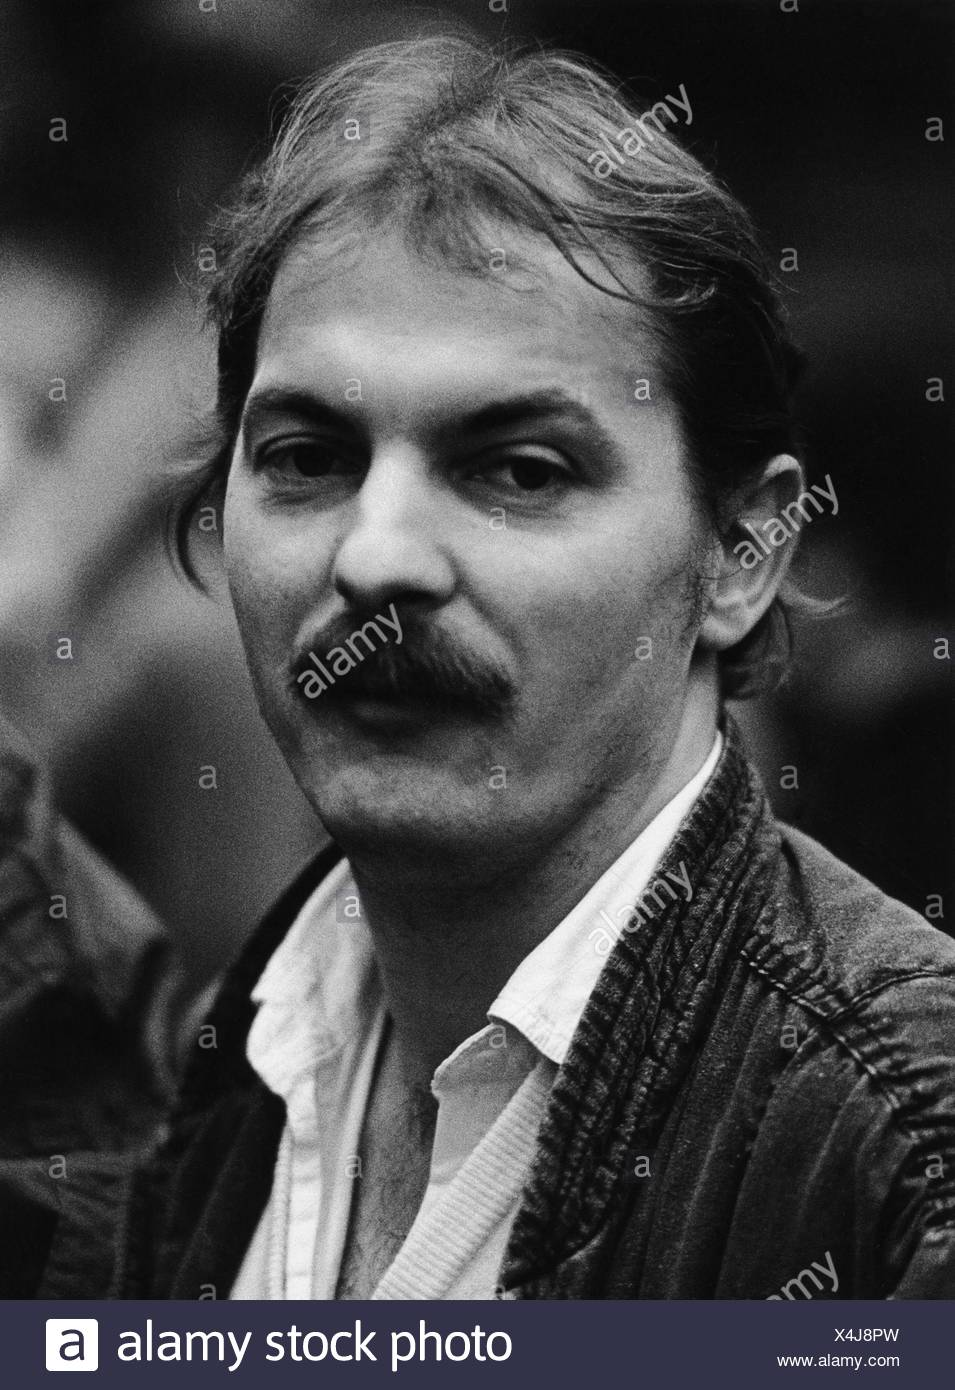 Kleinert, Hubert, * 19.4.1954, German political scientist, politician (Alliance '90/The Greens), portrait, federal party conference of The Greens, Hamburg, 7.-9.12.1984, , Additional-Rights-Clearances-NA - Stock Image